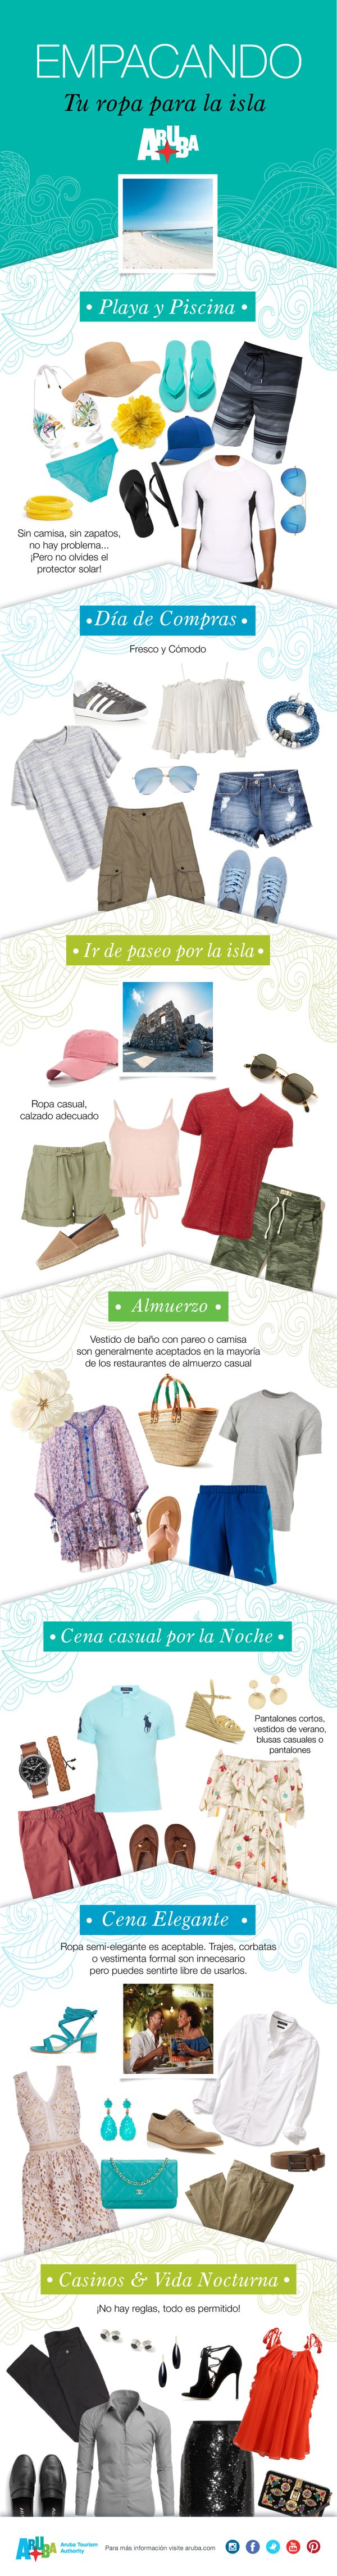 MSC Noticias - INFOGRAPHICS-19-Packing-Time-SPA-MAR17 Moda Proa Com